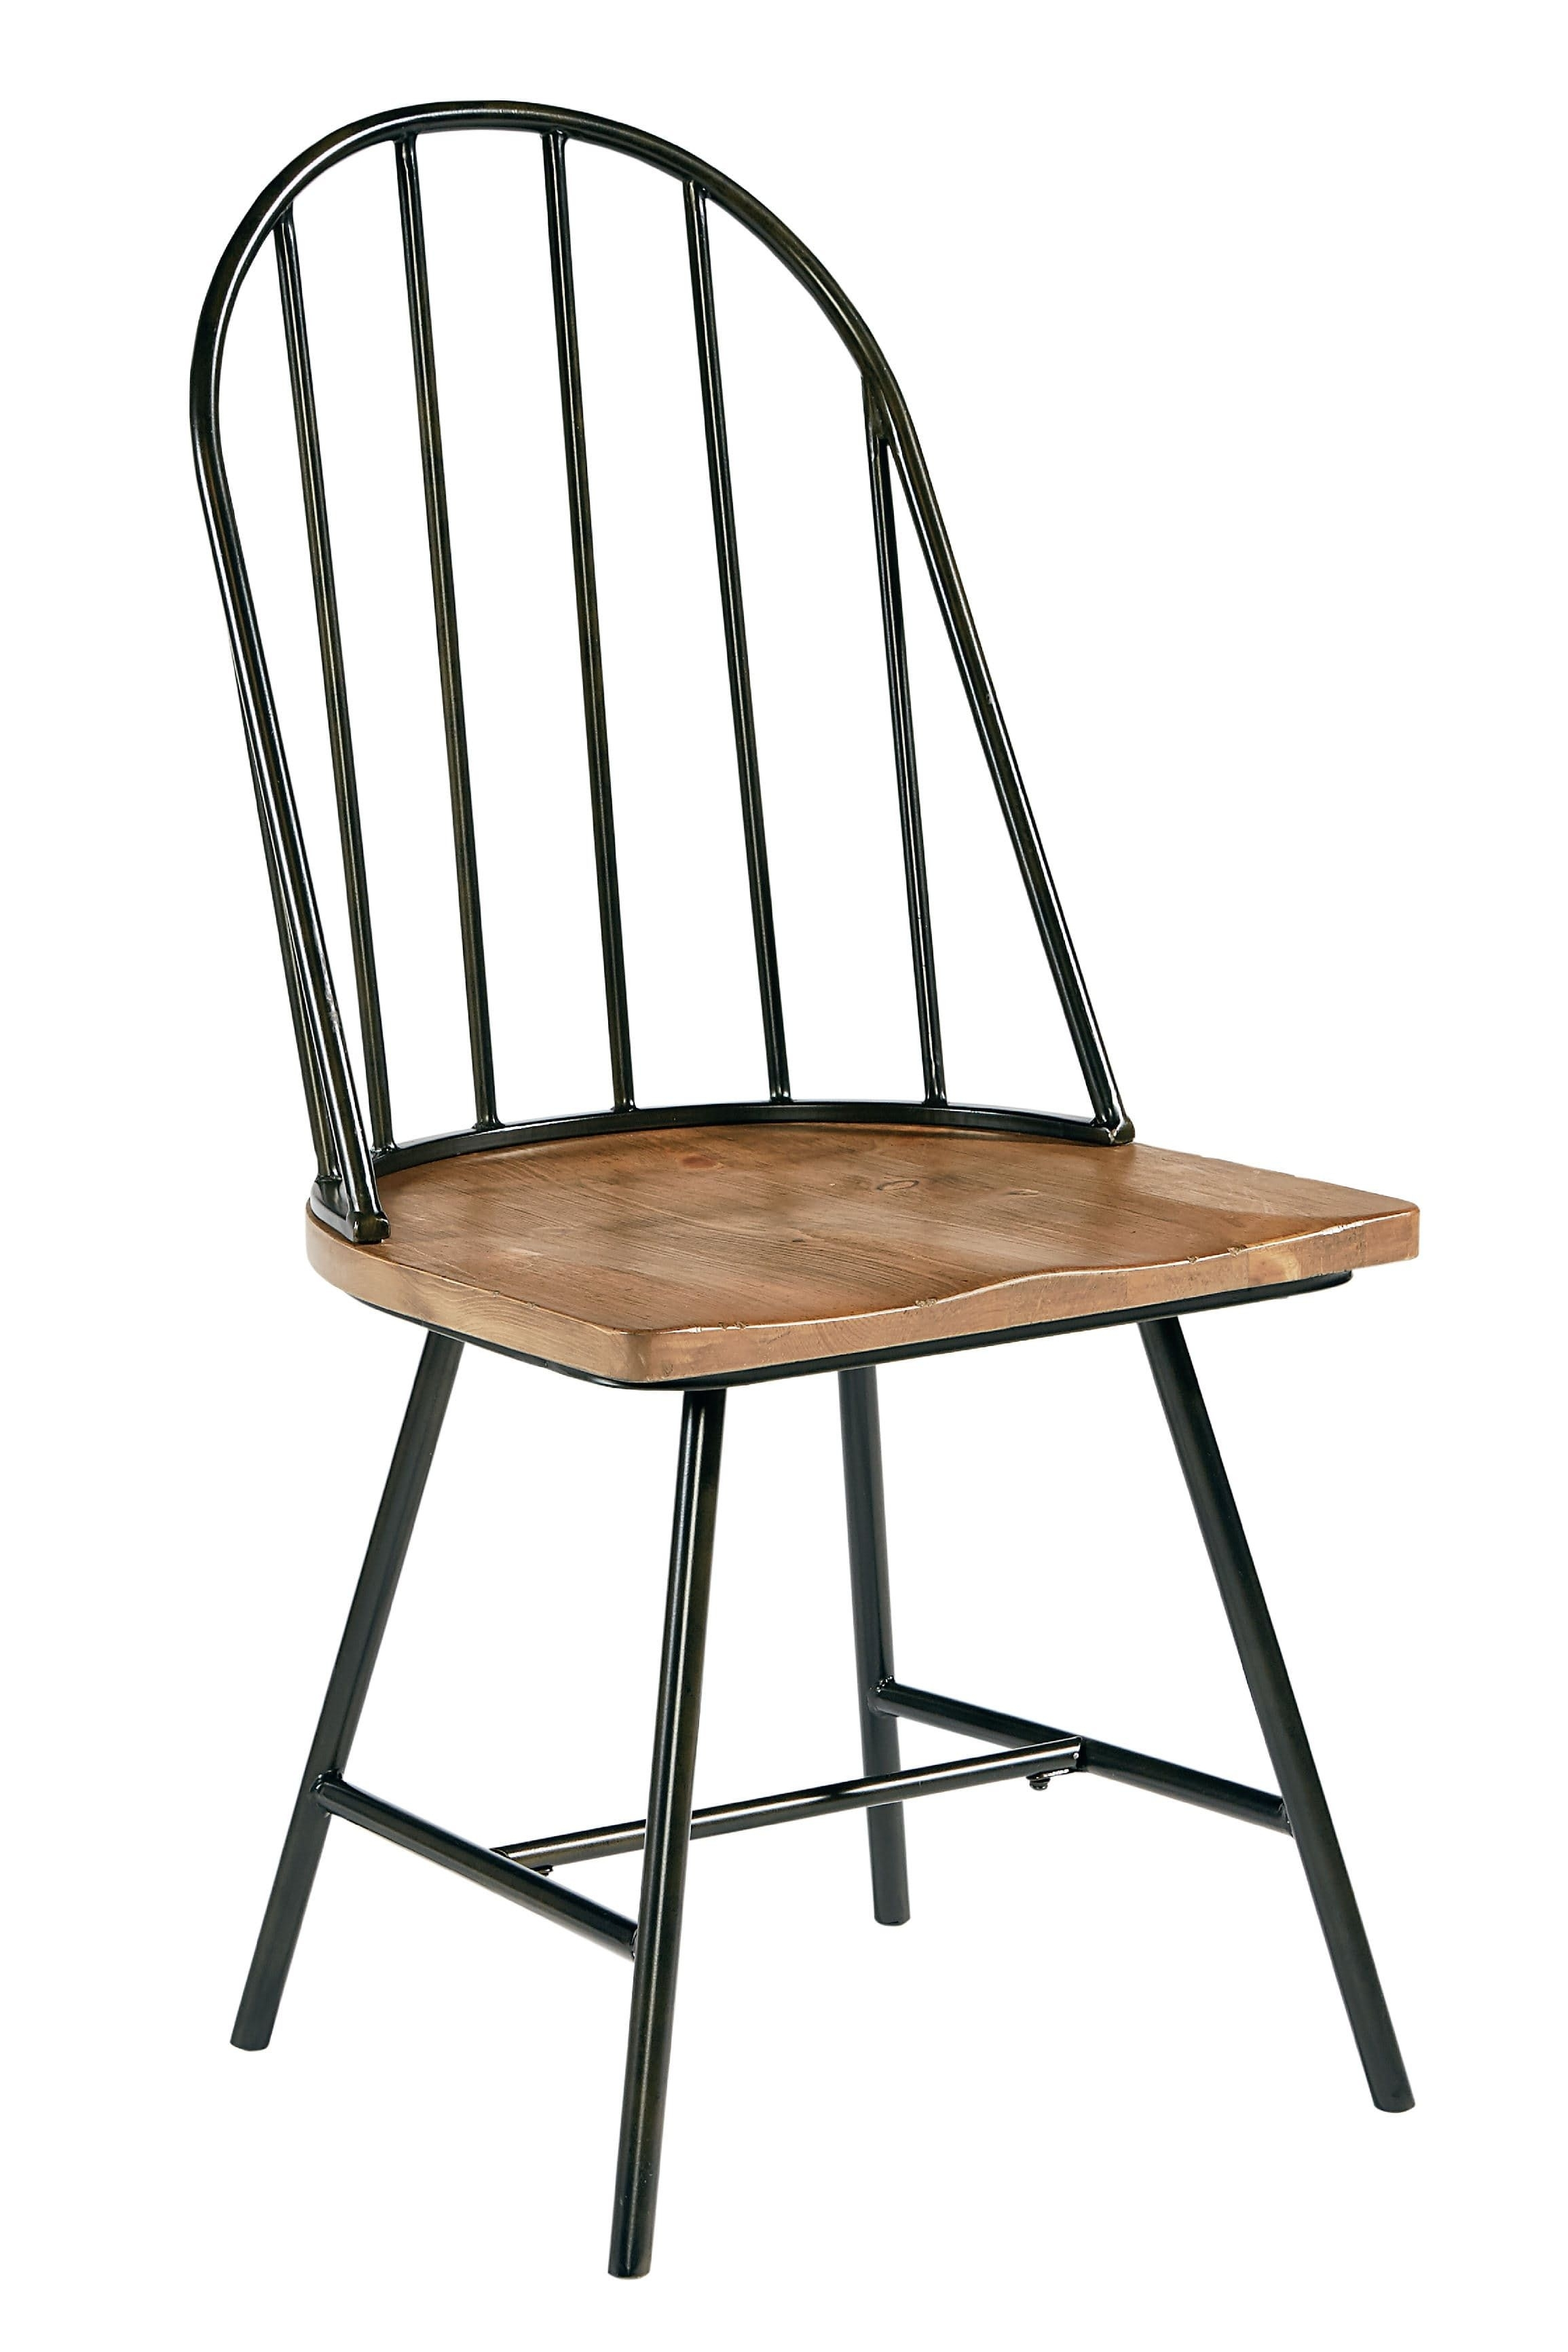 2018 Magnolia Home – Windsor Metal And Wood Hoop Chair St: (#1 of 20)